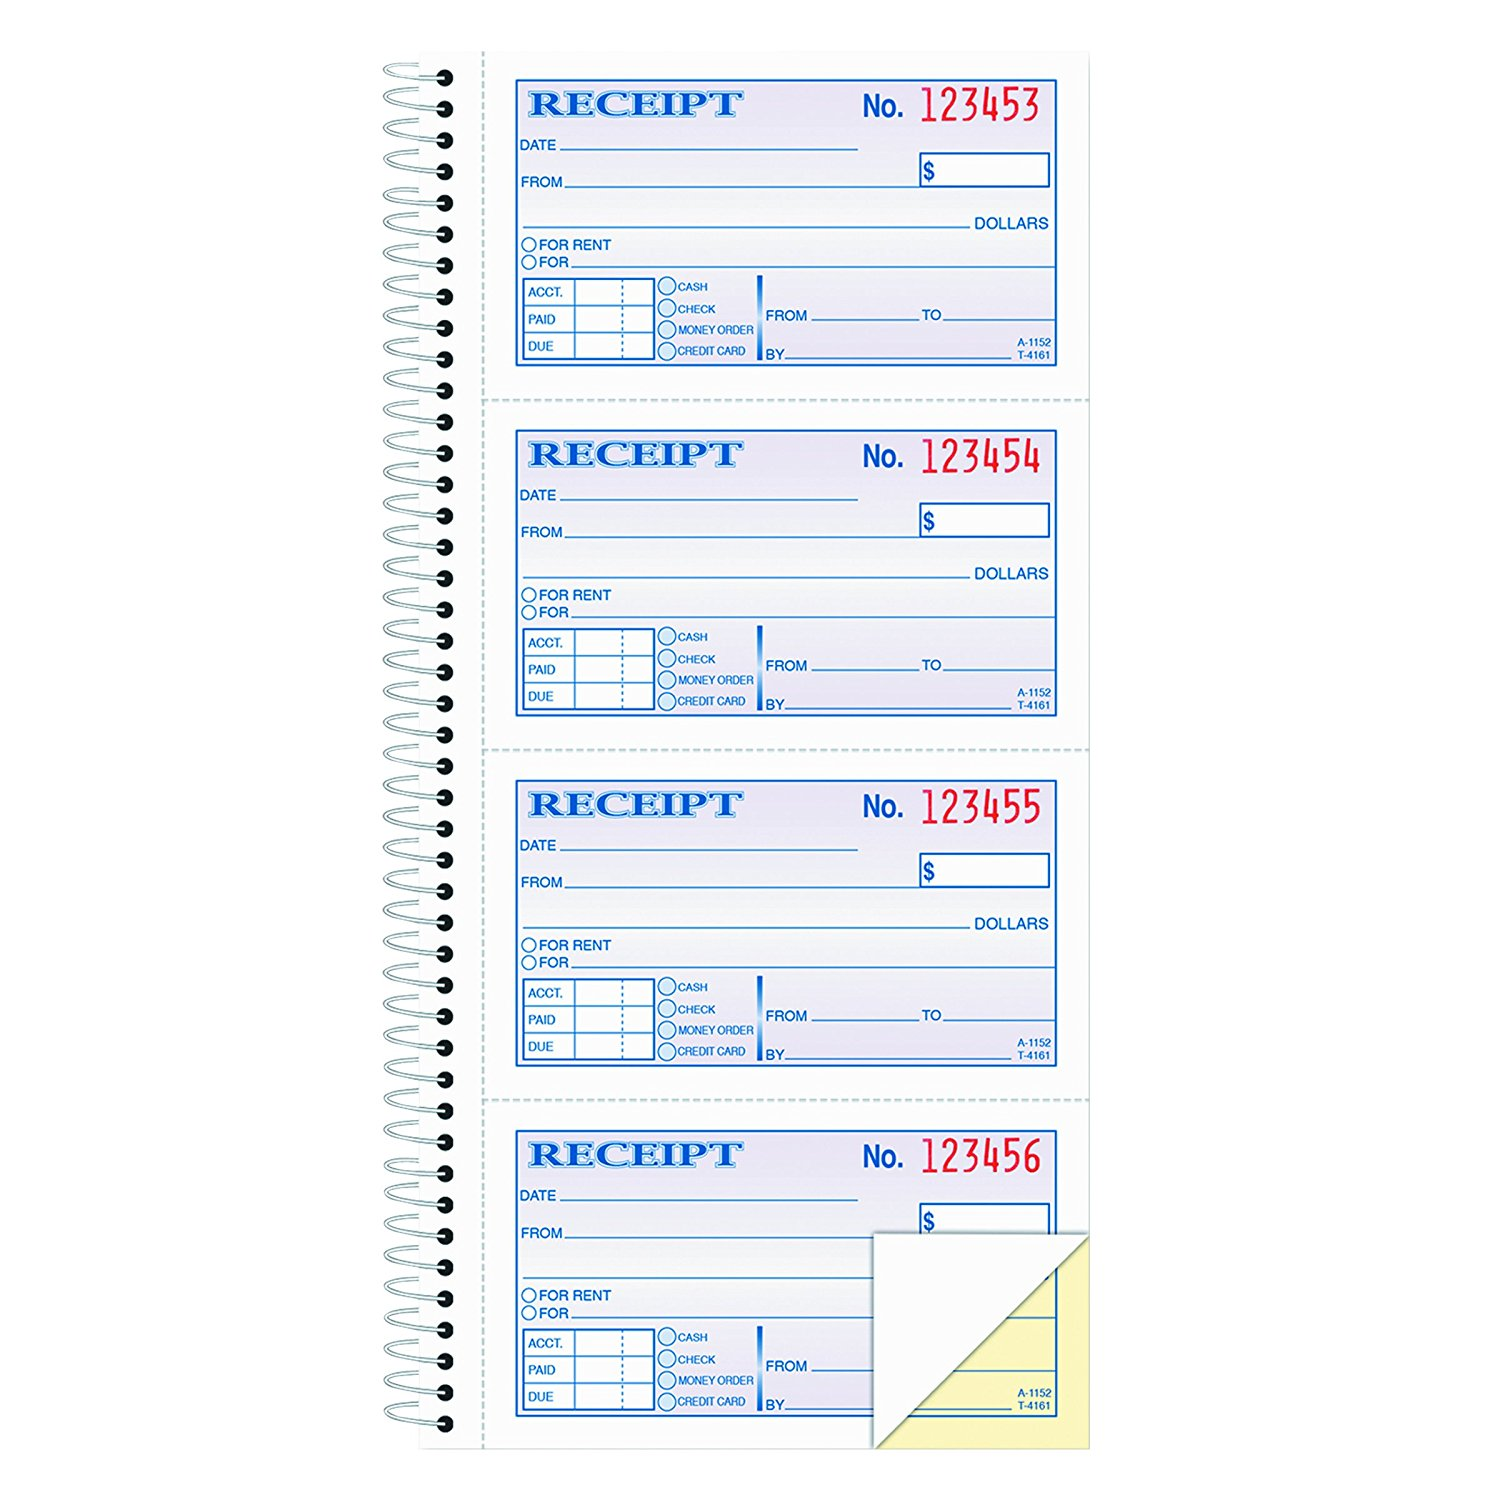 Money and Rent Receipt Book, 2-Part Carbonless, 5 1/4 x 11 Inch Detached, Spiral Bound, 200 Sets per Book (SC1152), Use for rent payments or any other.., By Adams